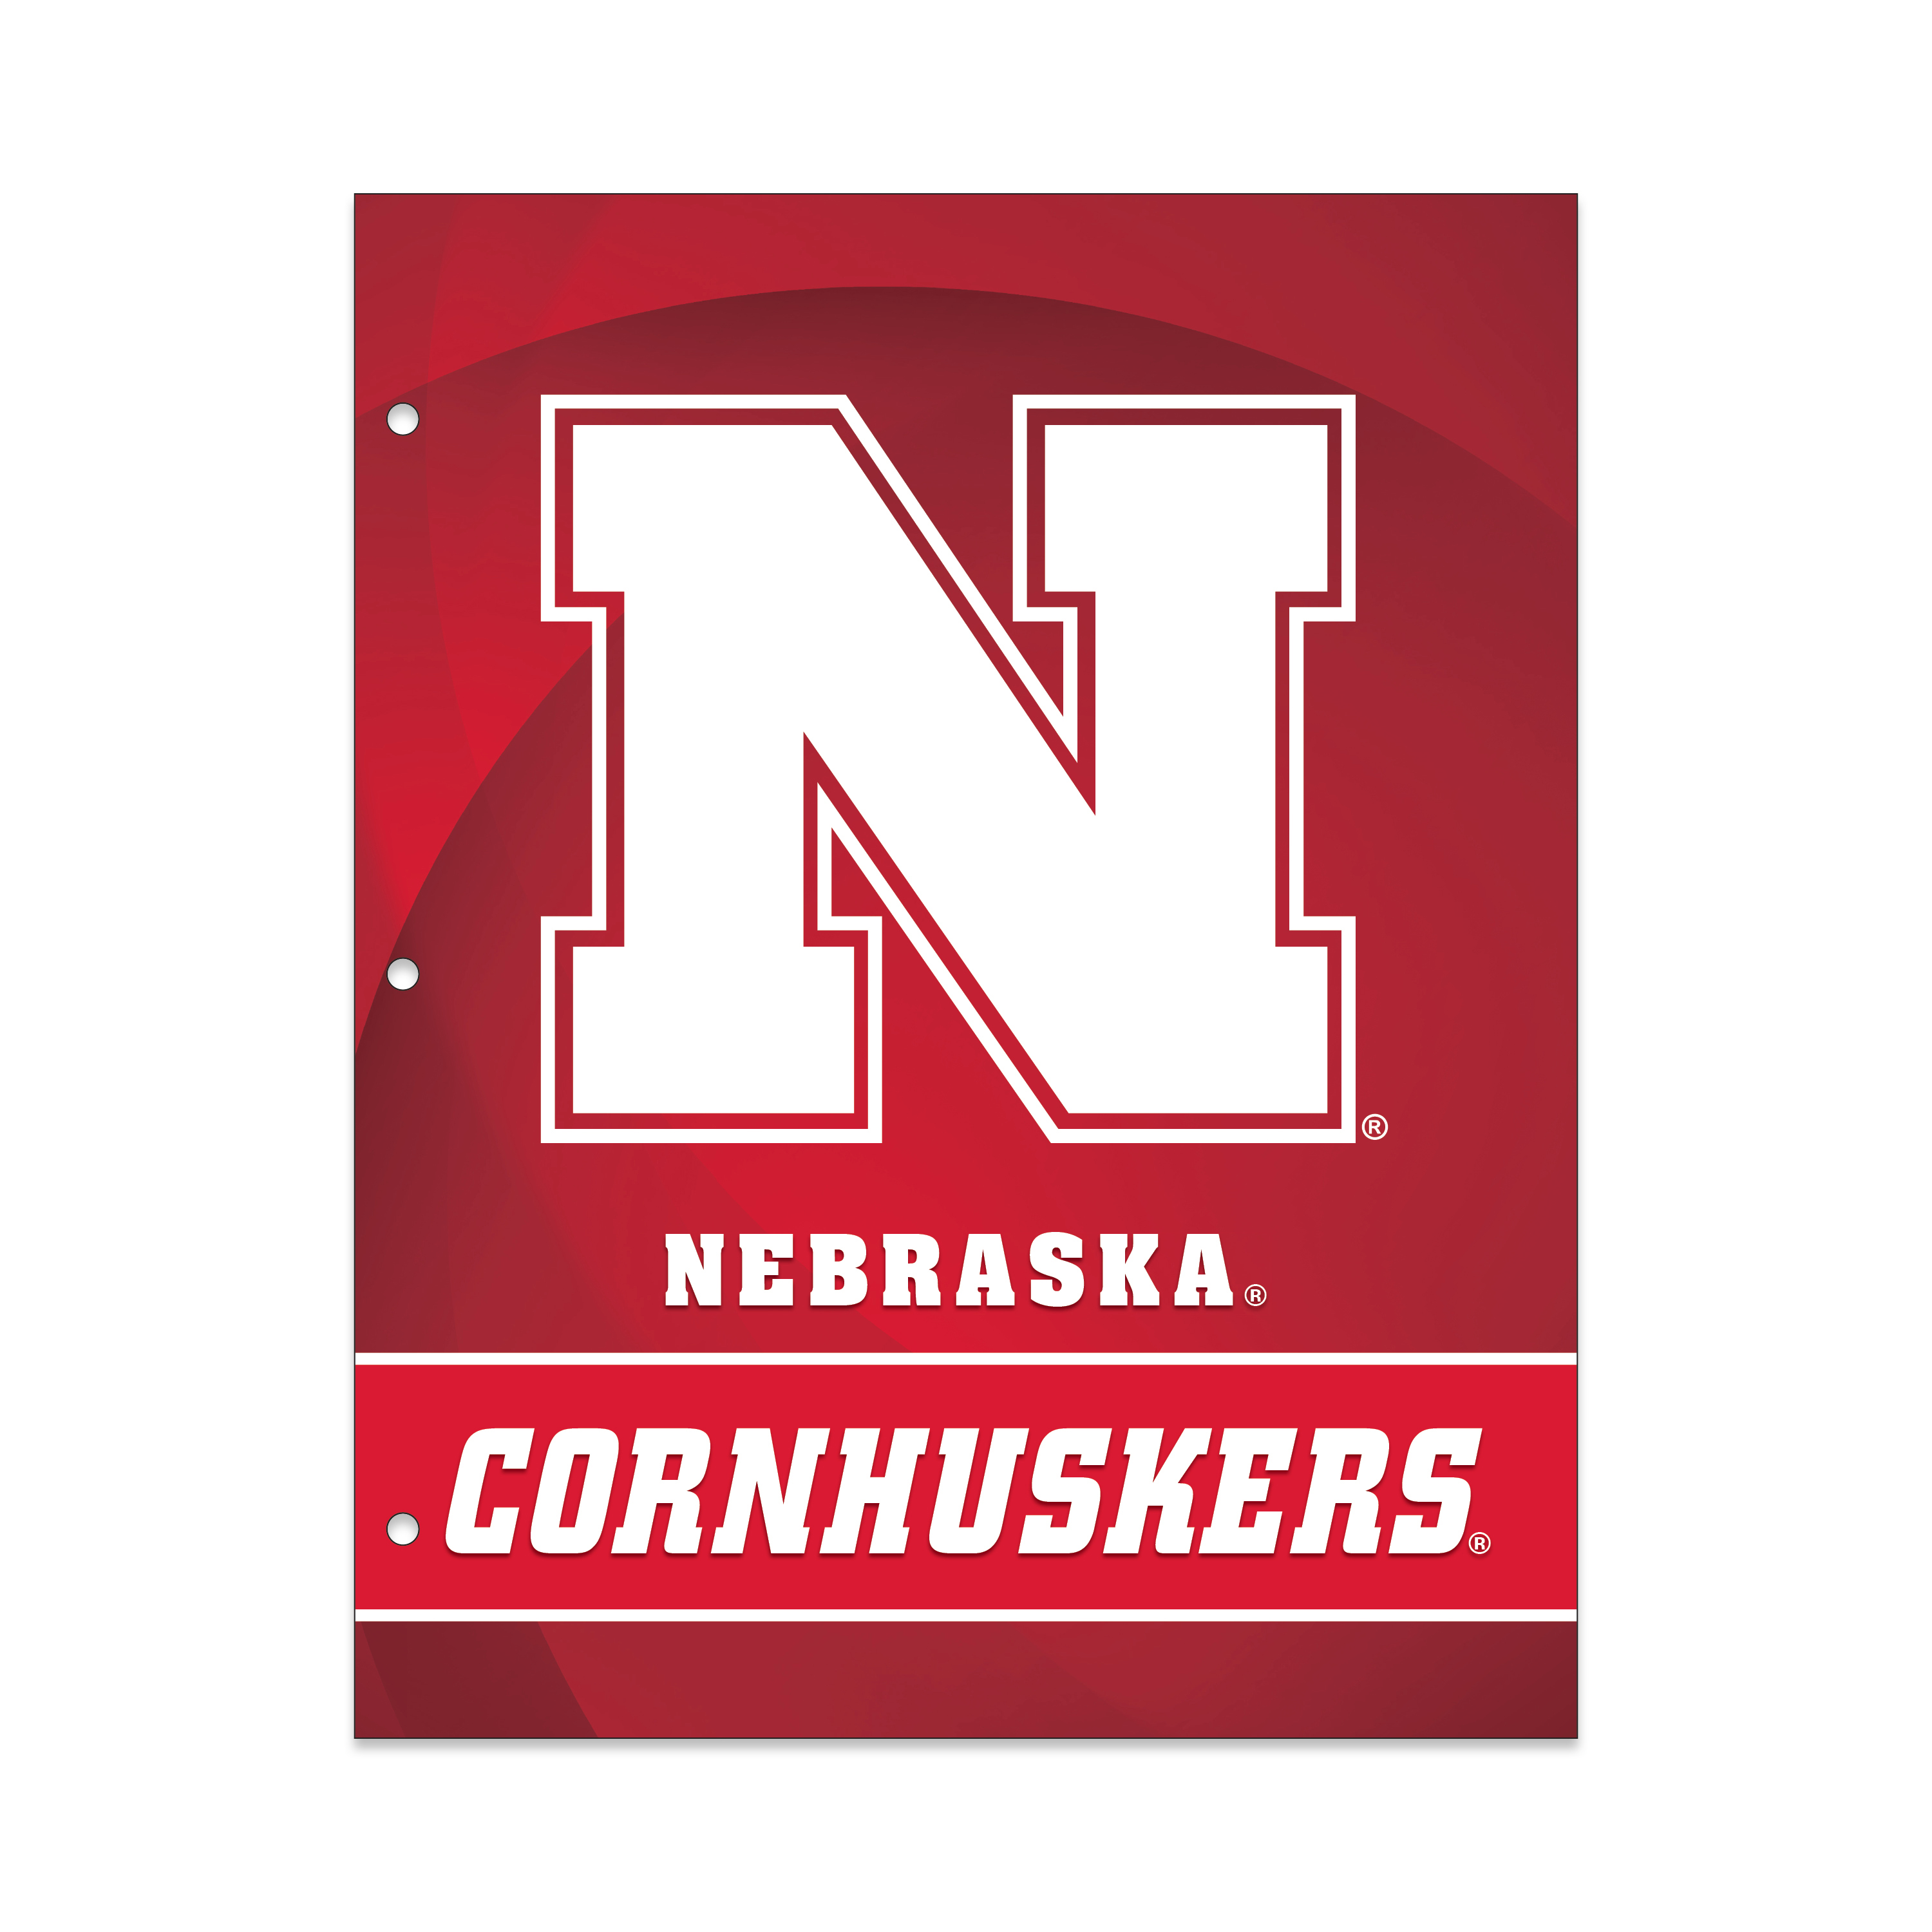 NCAA Nebraska Cornhuskers 2 Pocket Portfolio, Three Hole Punched, Fits Letter Size